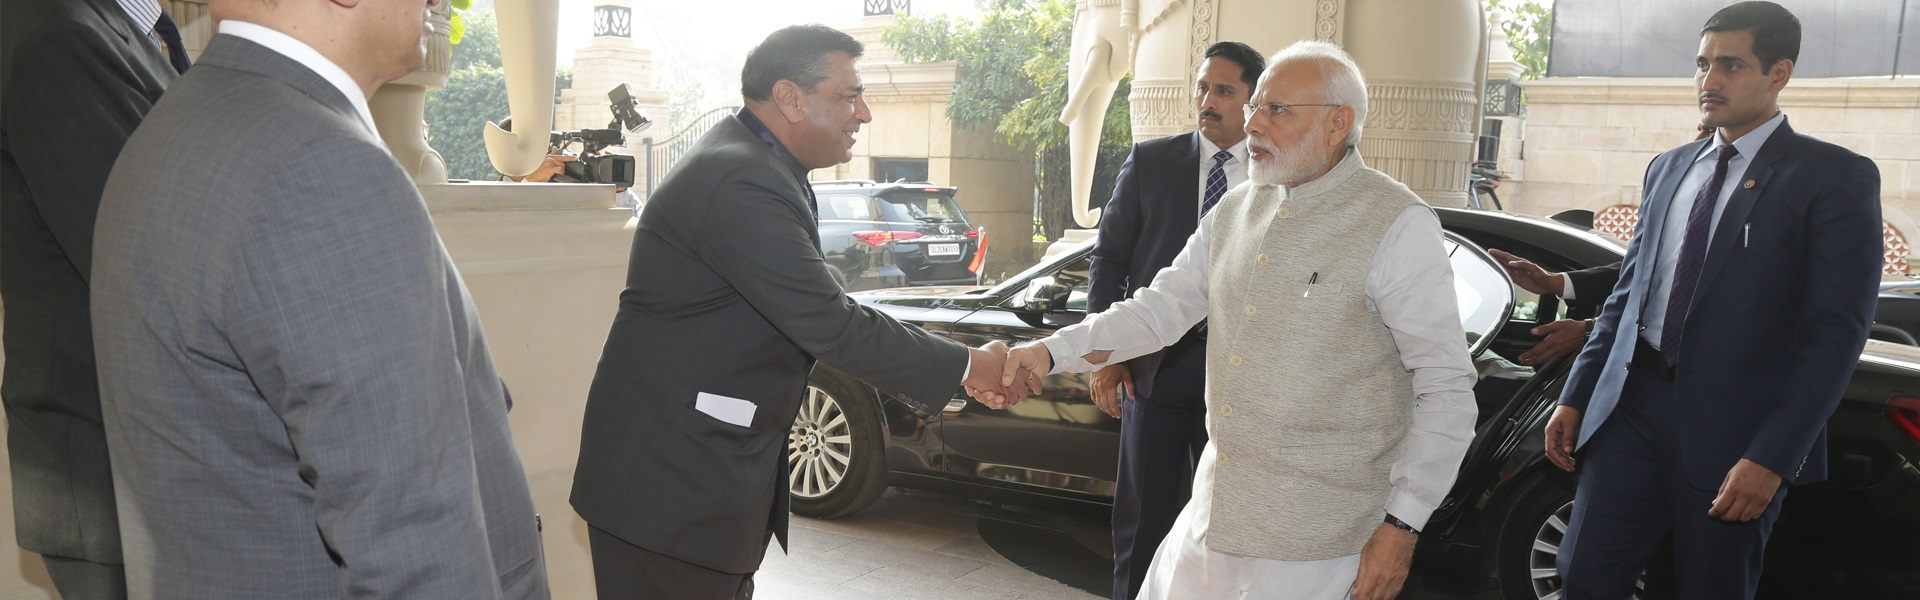 Dr. T.C.A. Raghvan, DG, ICWA welcoming Shri Narendra Modi, Prime Minister of India at the first IBSA Gandhi-Mandela Memorial Freedom Lecture by H.E. Mr. Matamela Cyril Ramaphosa, President of the Republic of South Africa, New Delhi, 25 January, 2019.